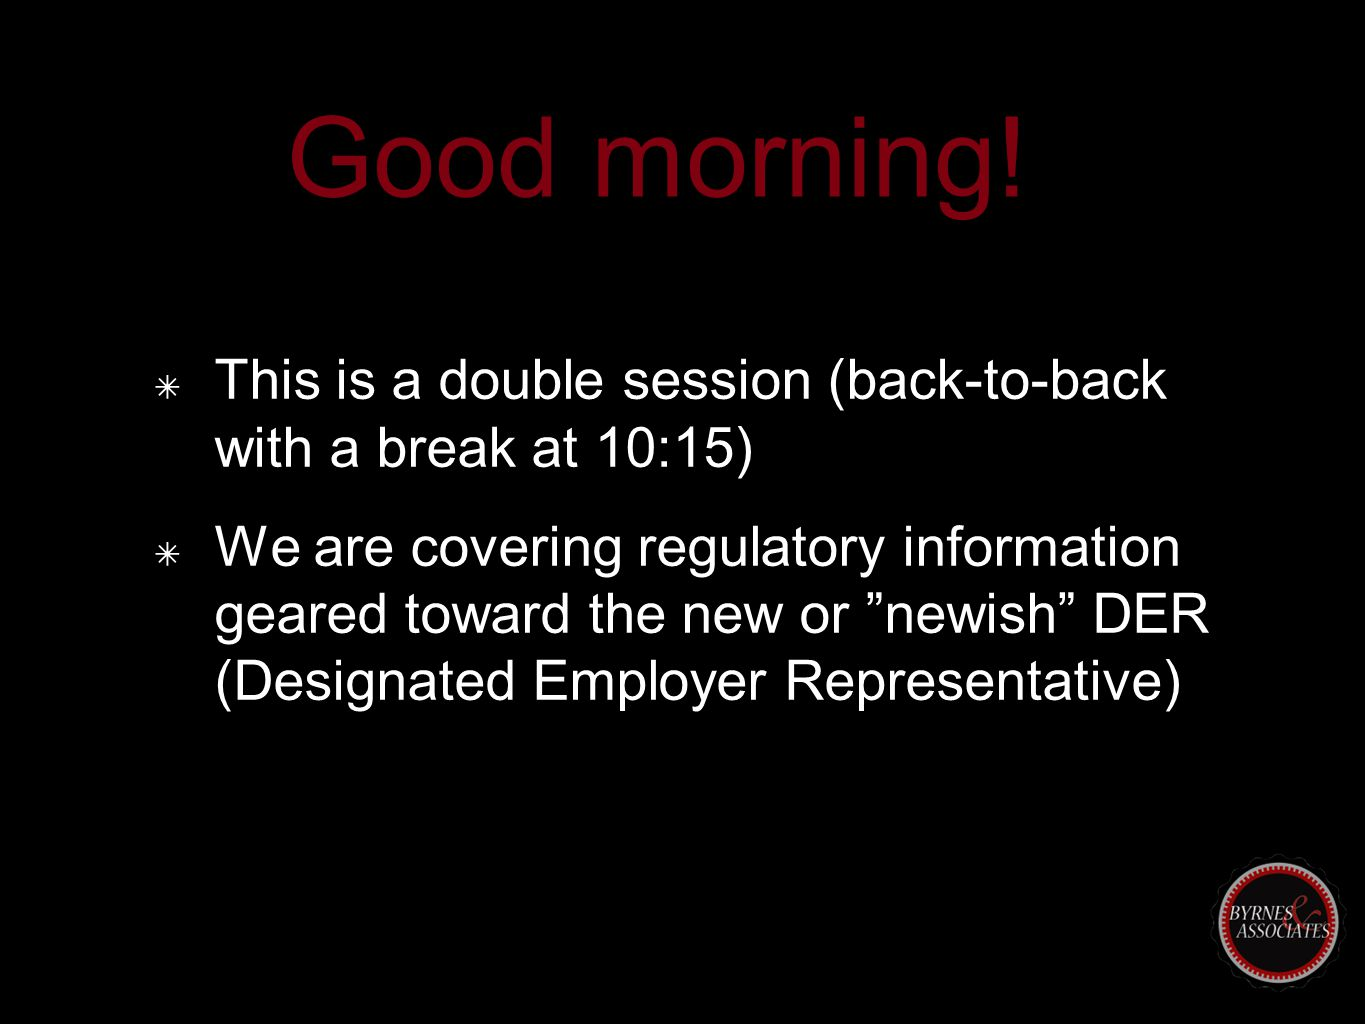 "Good morning! ✴ This is a double session (back-to-back with a break at 10:15) ✴ We are covering regulatory information geared toward the new or ""newis"